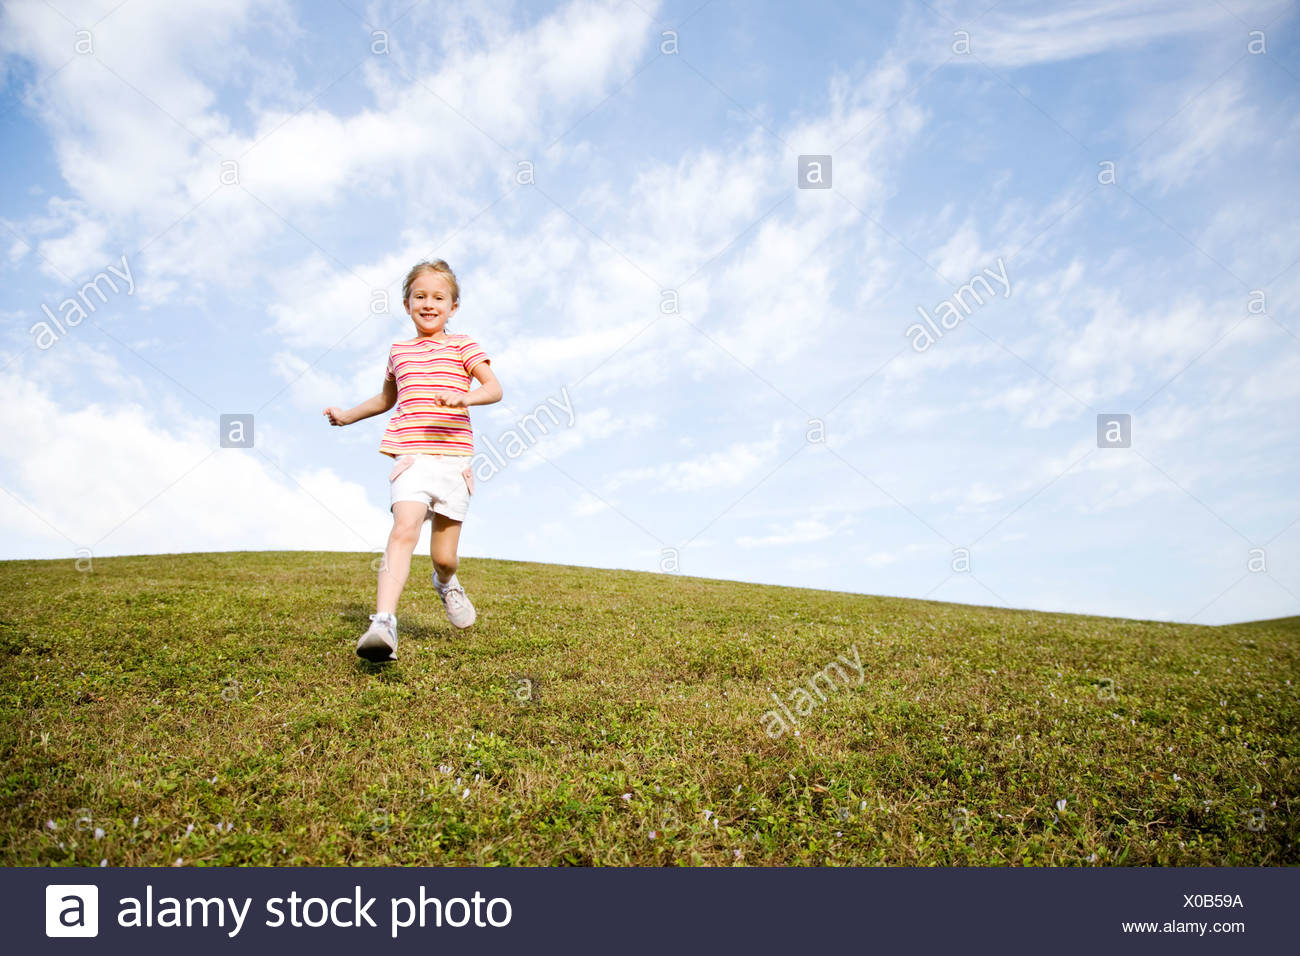 A young girl running across a hill - Stock Image